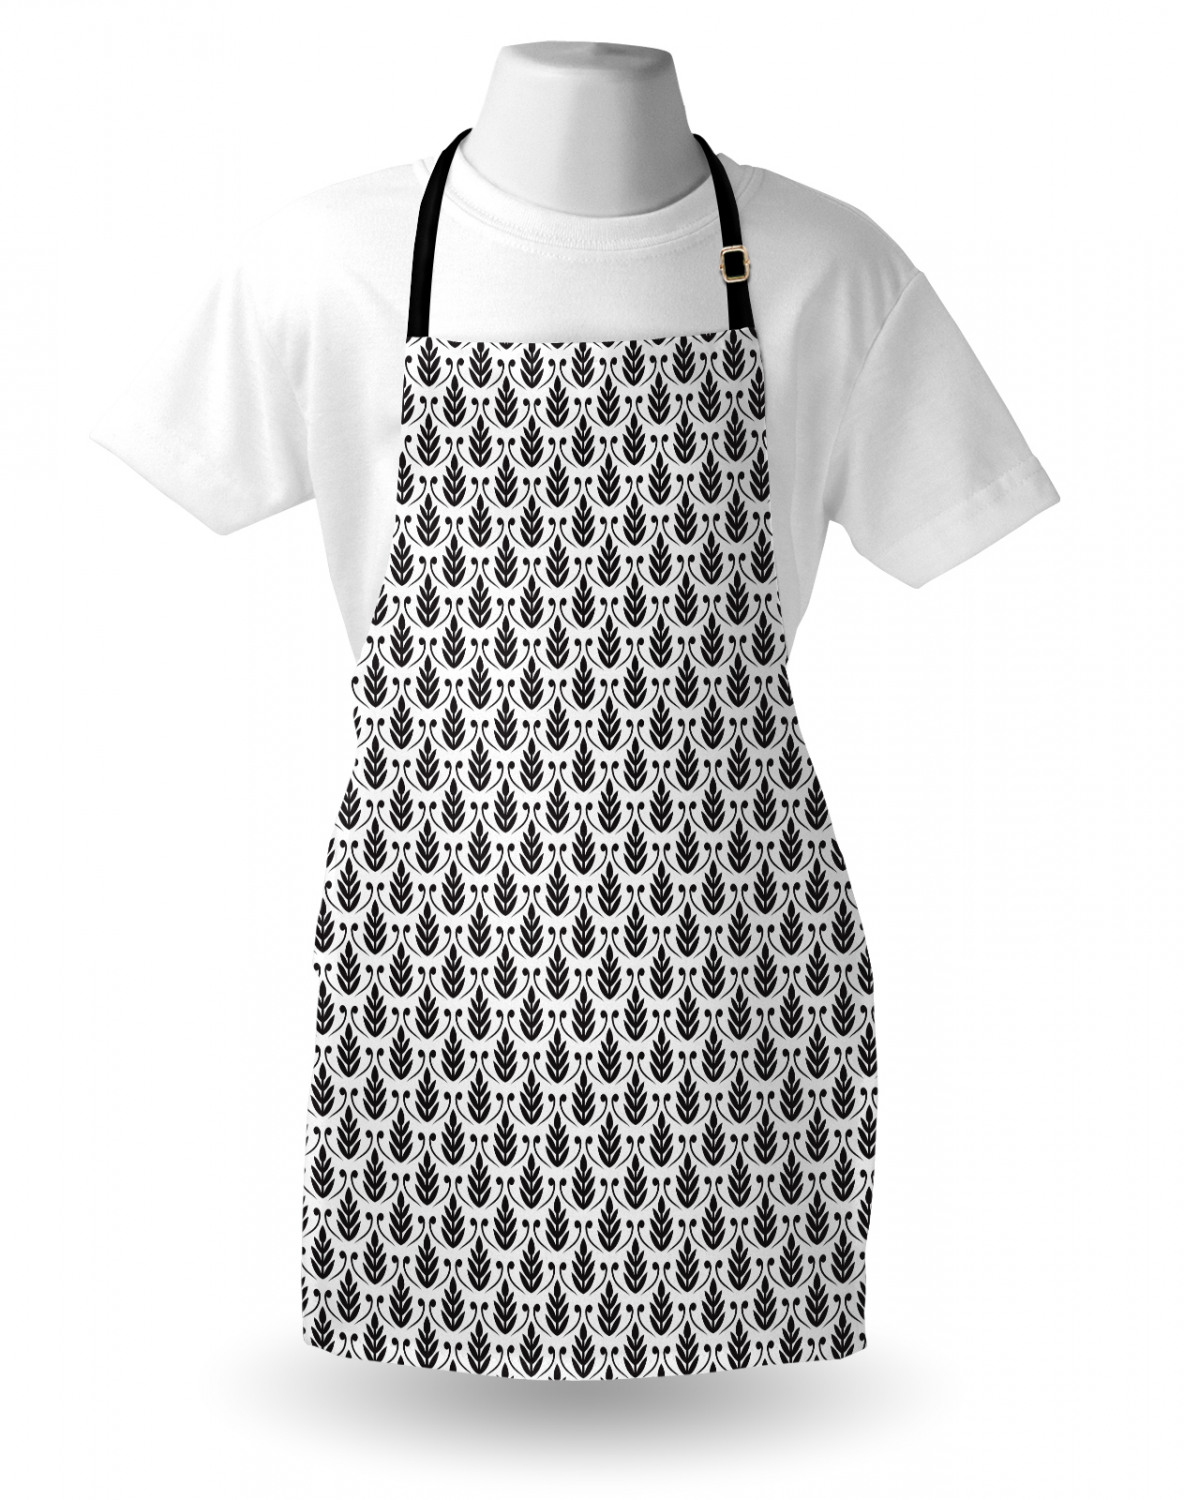 Ambesonne-Outdoor-Use-Apron-with-Adjustable-Neck-Strap-for-Gardening-and-Cooking miniatura 111